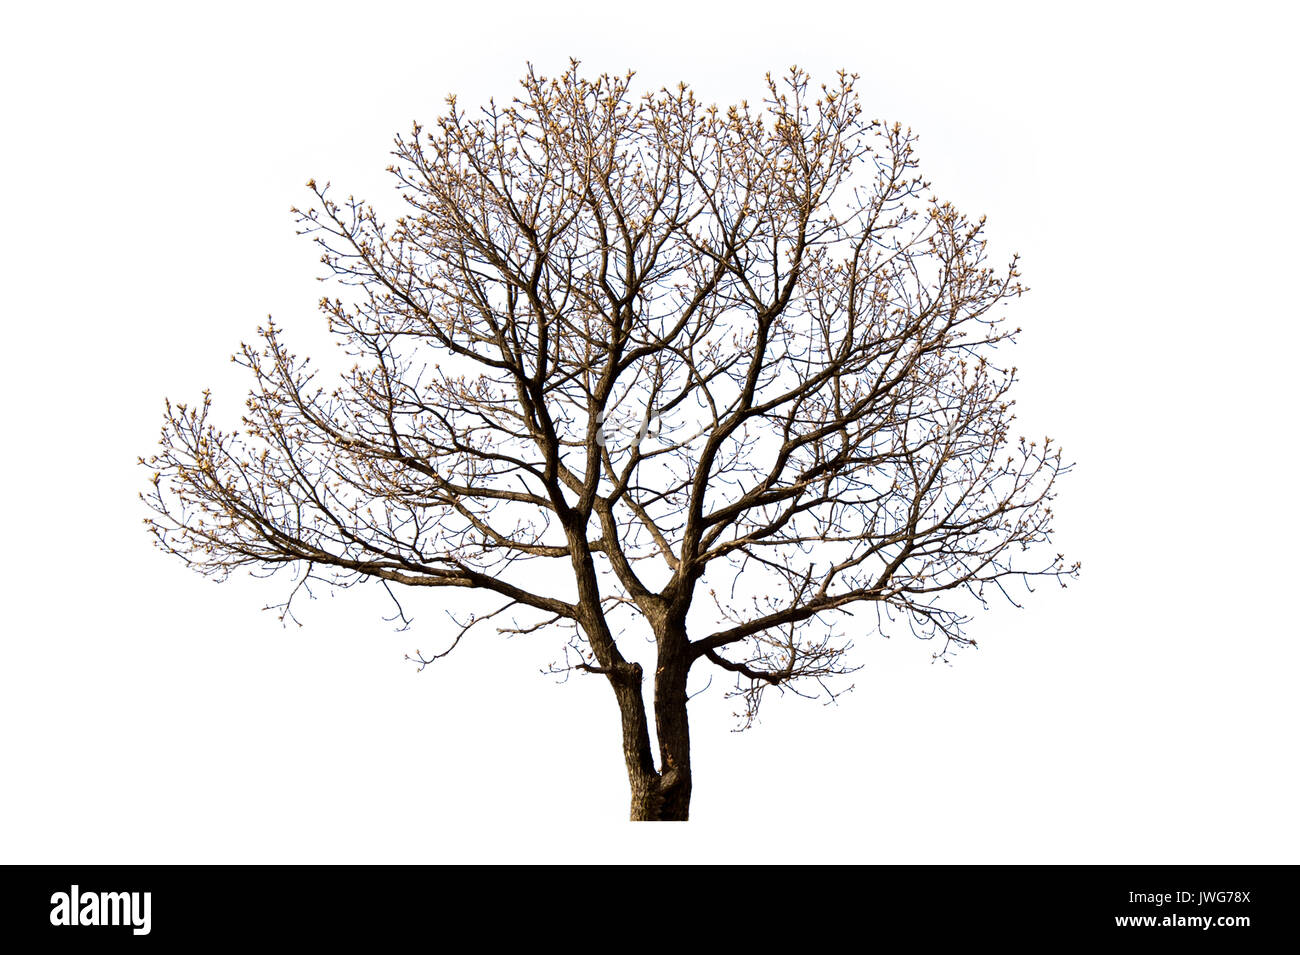 silhouette bare oak tree no stockfotos silhouette bare oak tree no bilder alamy. Black Bedroom Furniture Sets. Home Design Ideas